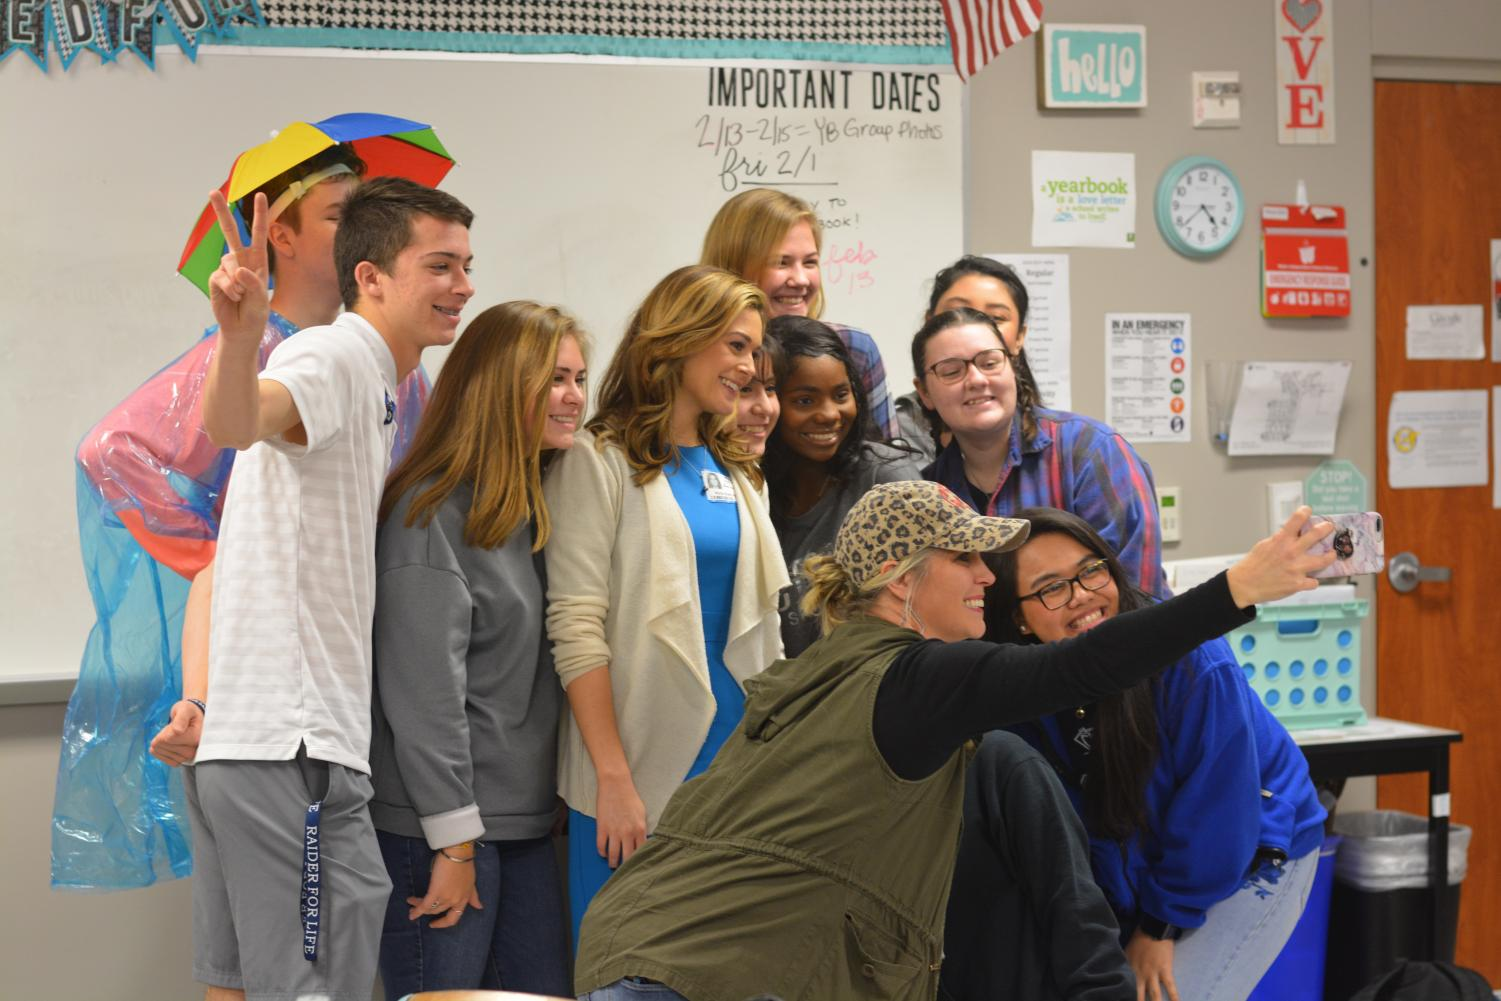 Take a flick // Gathering all together, journalism students take a selfie with Allie Spillyards before she daparts. Students got up close and personal with the NBC News reporter, and got a chance to dive deep into her world of journalism.